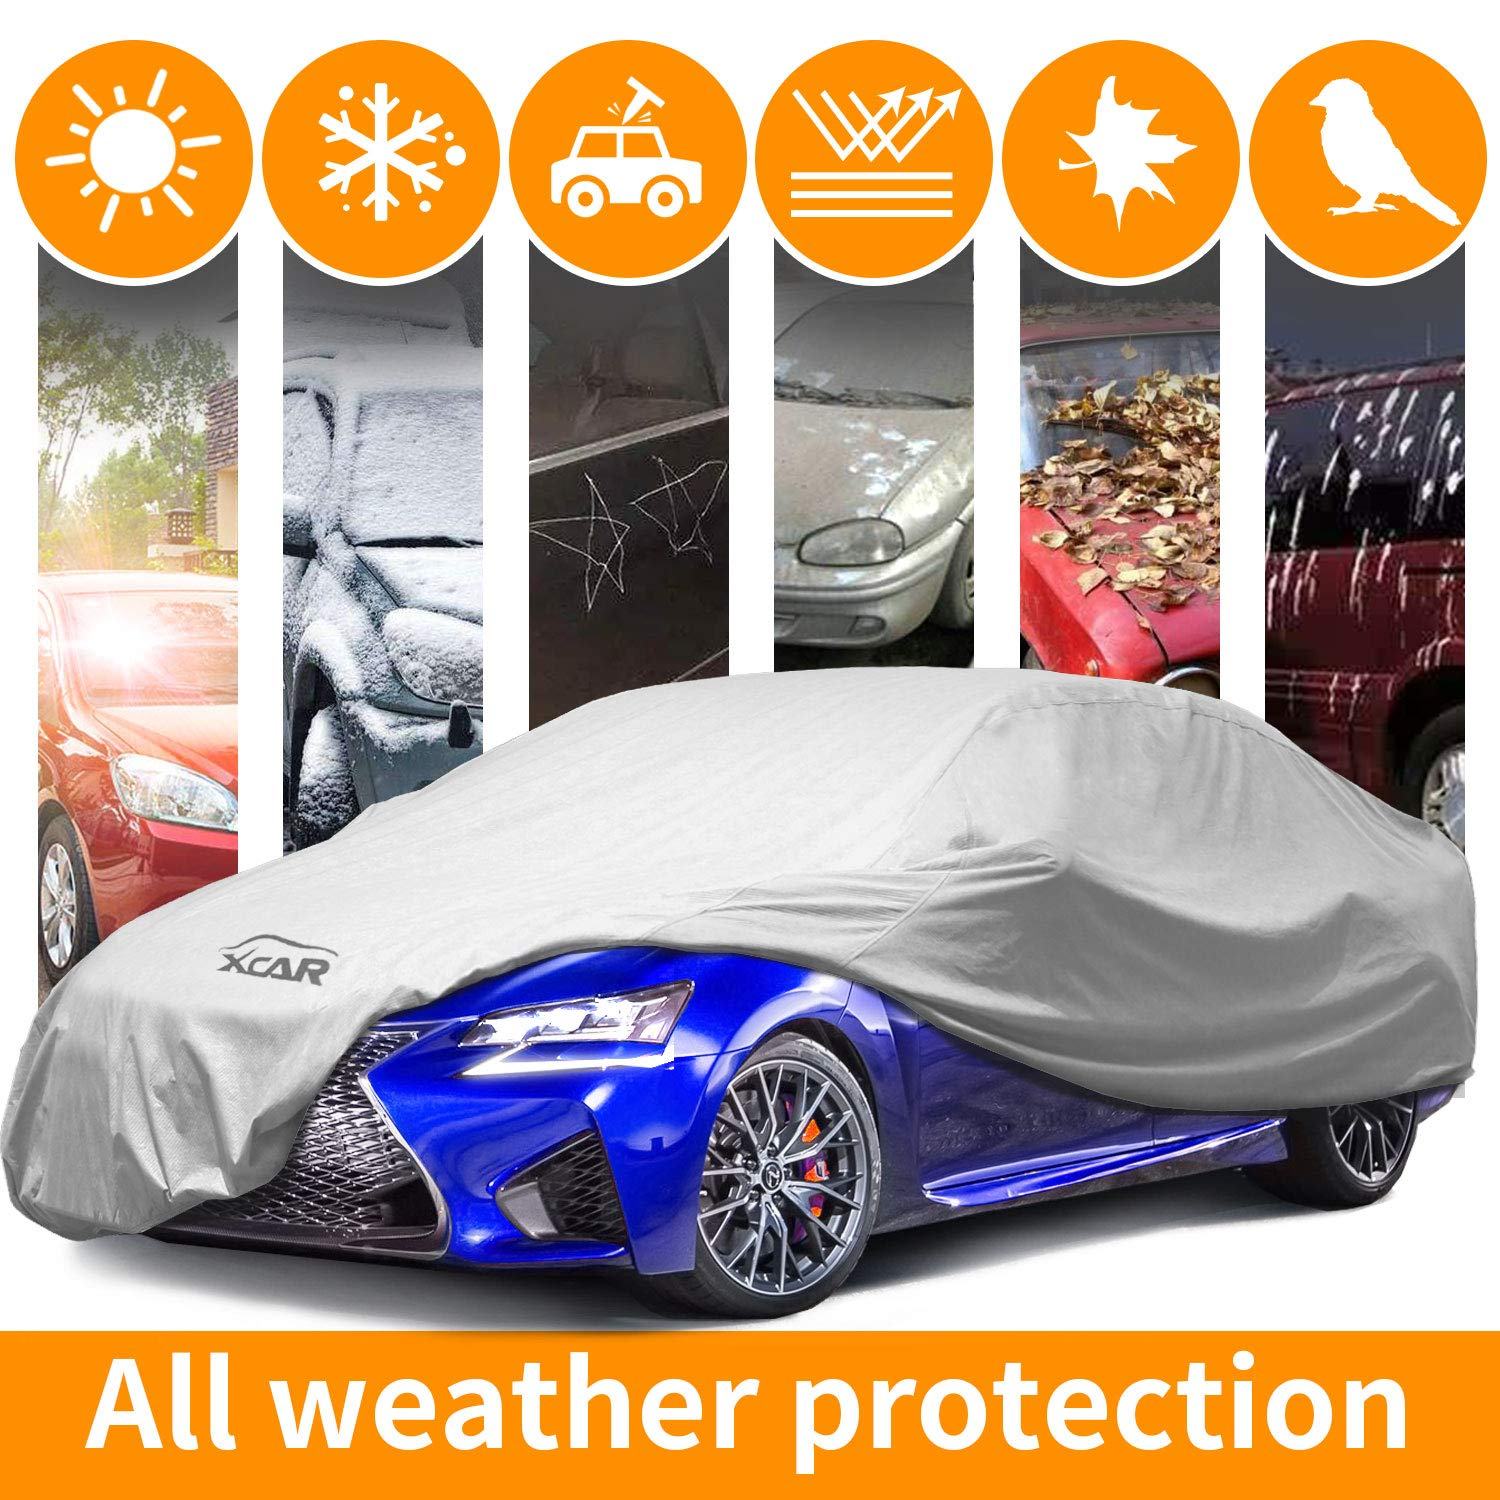 XCAR Breathable Dust Prevention Car Cover-Fits Sedan Hatchback Up to 228 Inch in Length